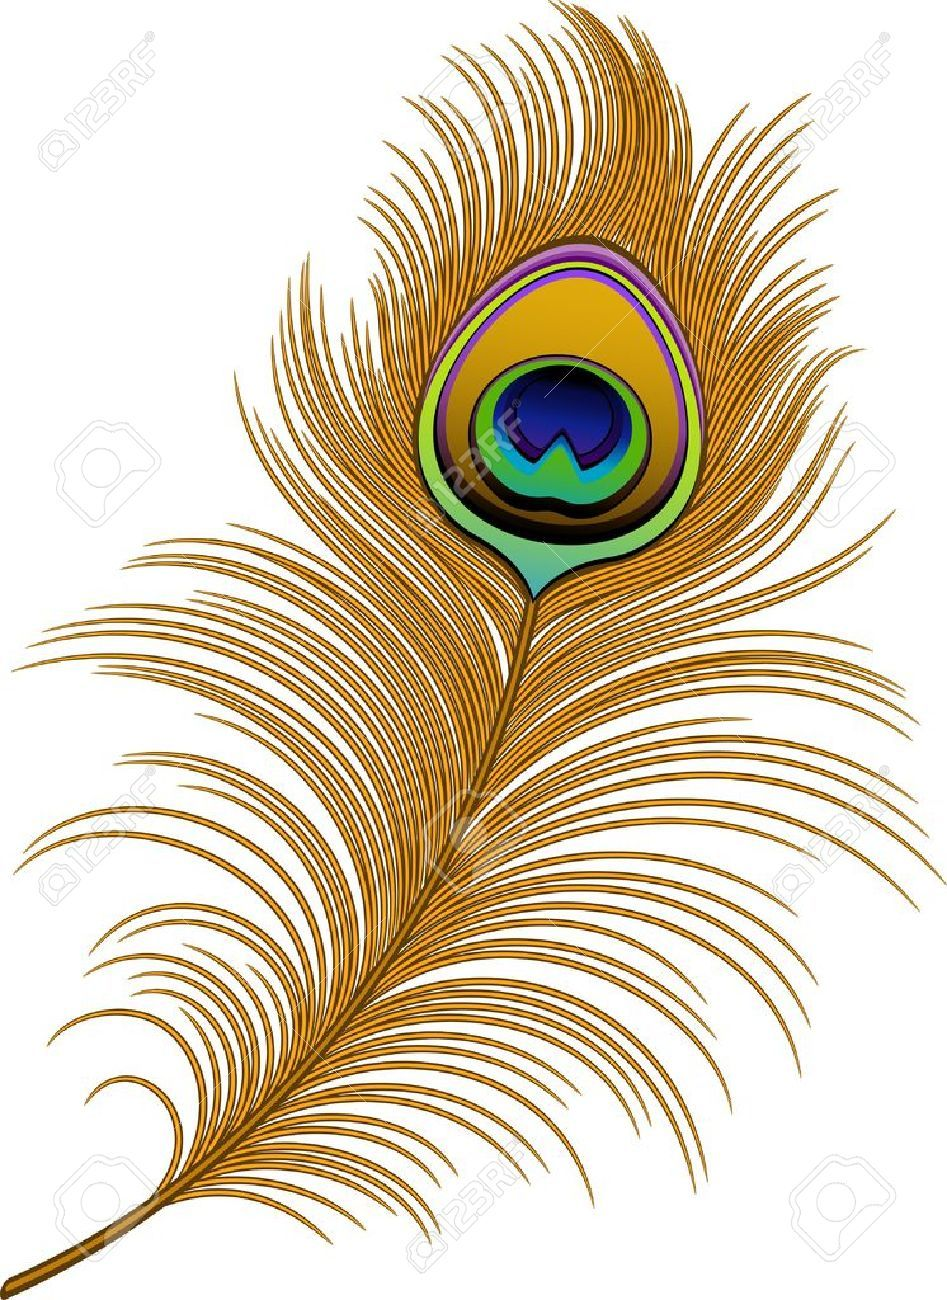 Feather clipart paisley peacock. Stock vector beautiful in